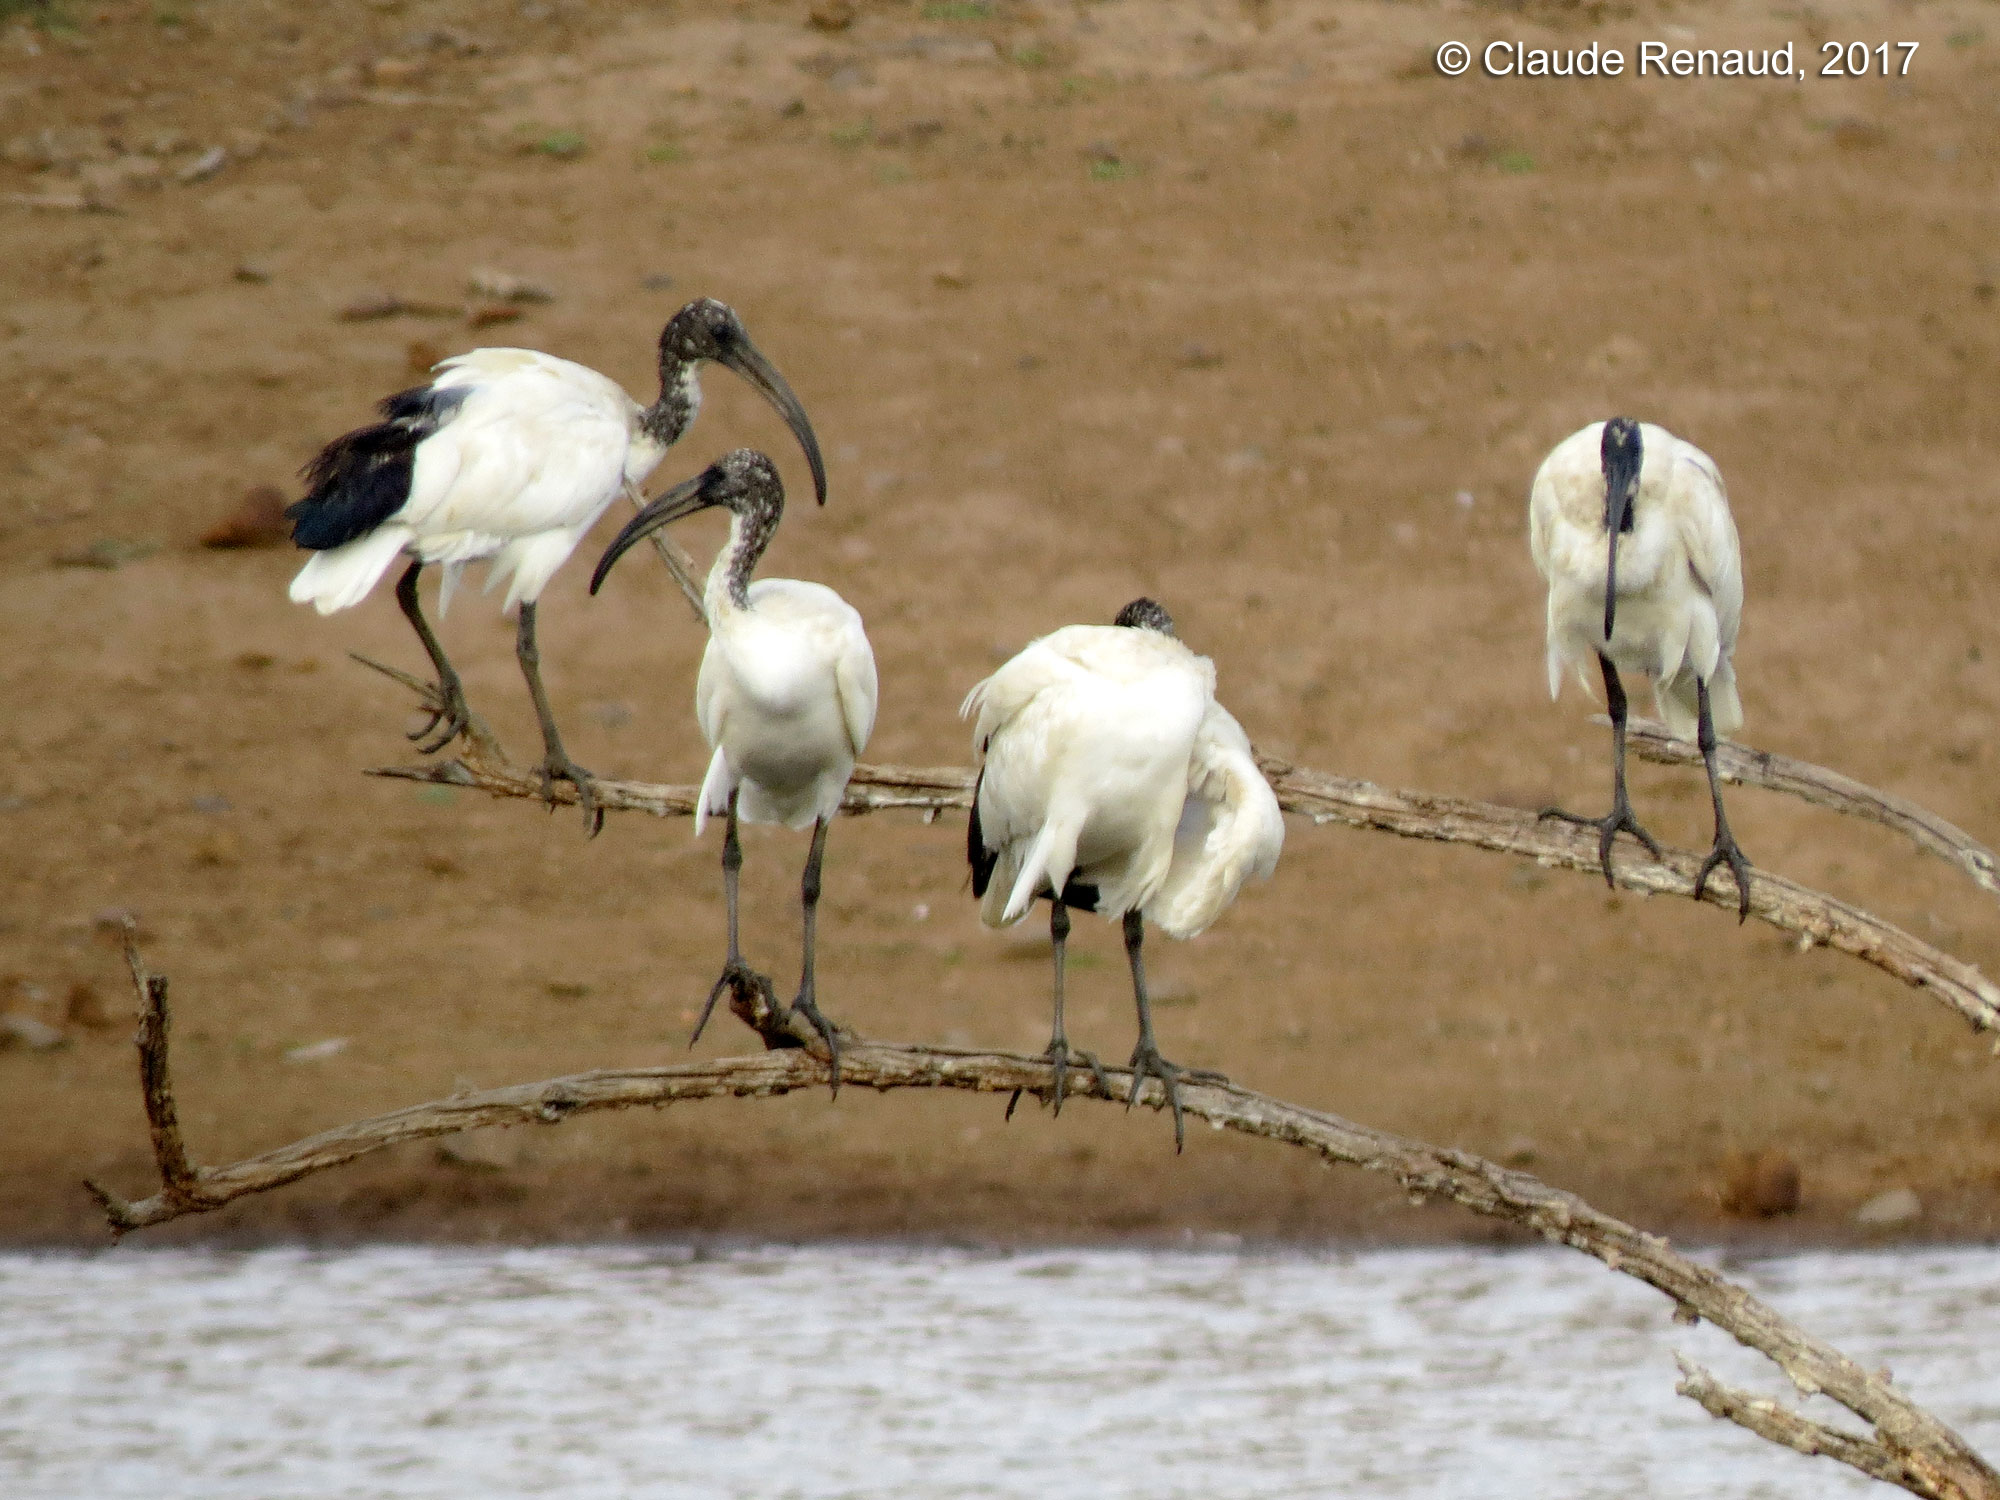 African Sacred Ibis photo 03